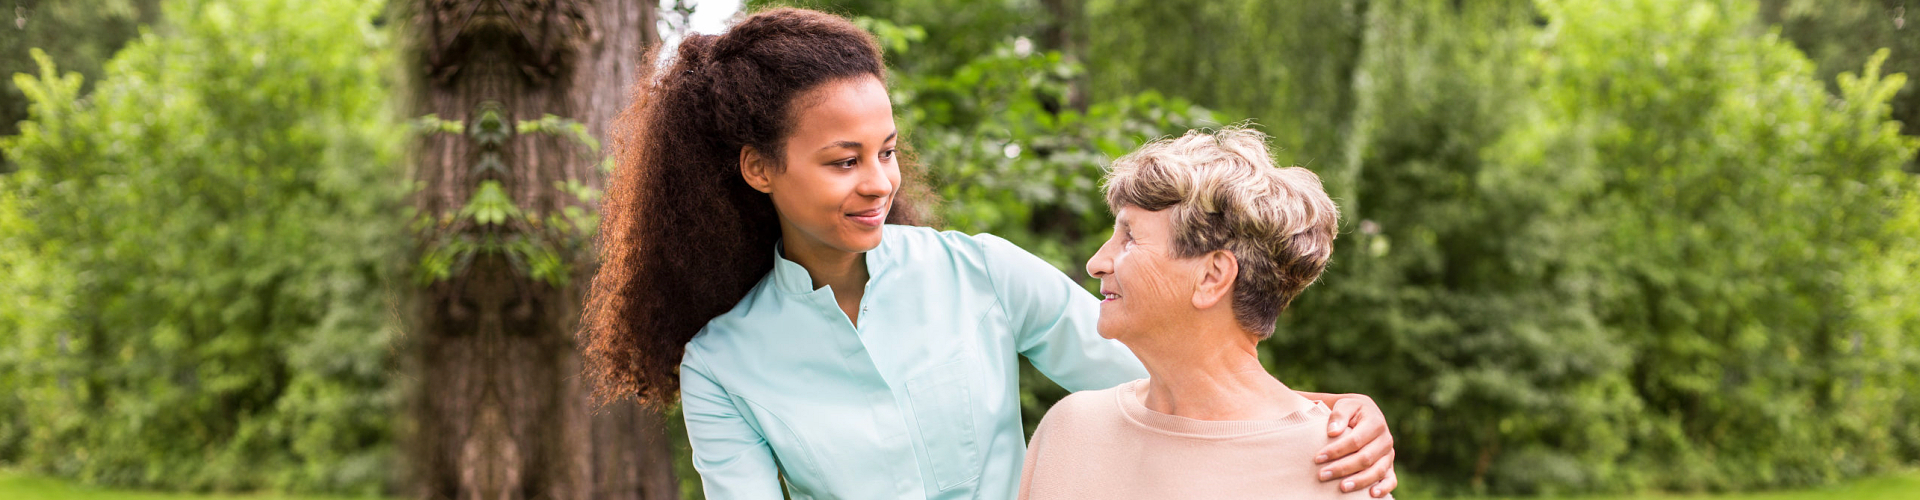 female caregive and senior woman smiling outdoor